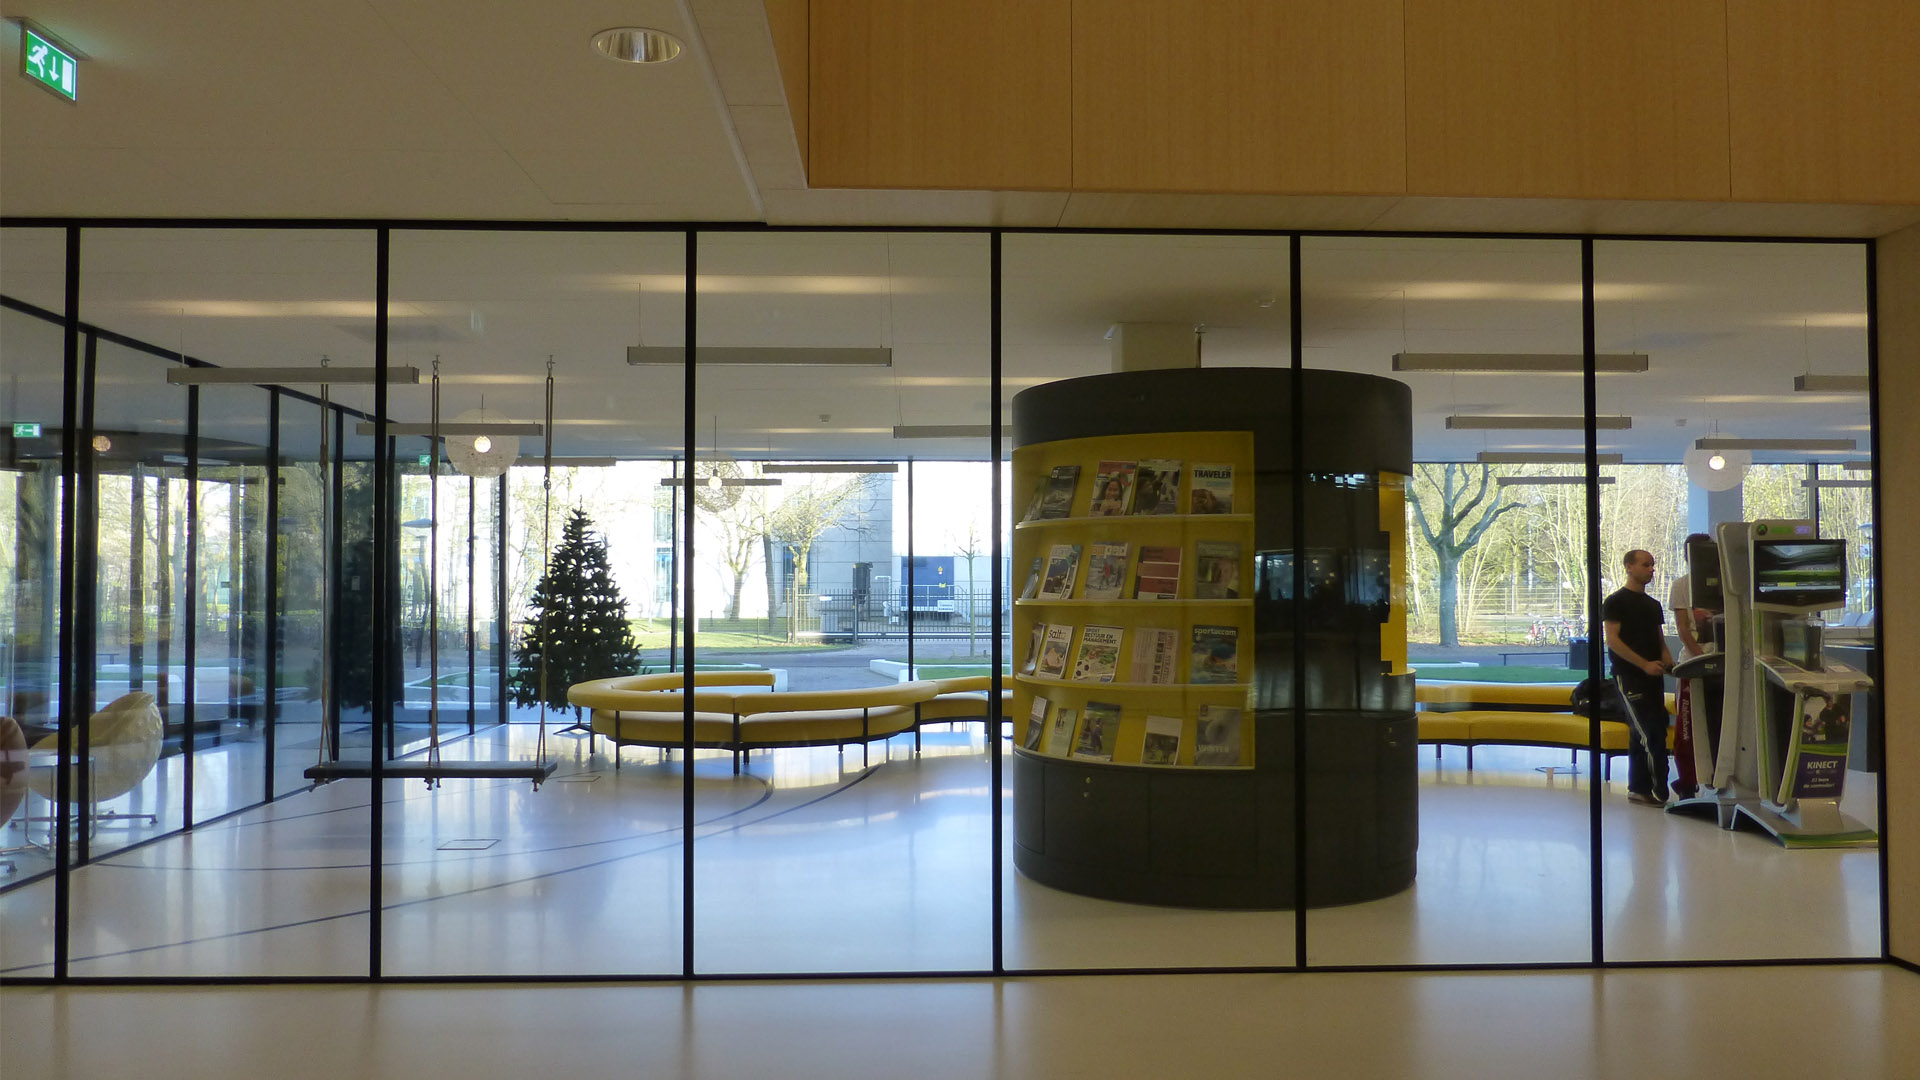 Steel glazed indoor doors in the Fontys Sport high school, Eindhoven, The Netherlands